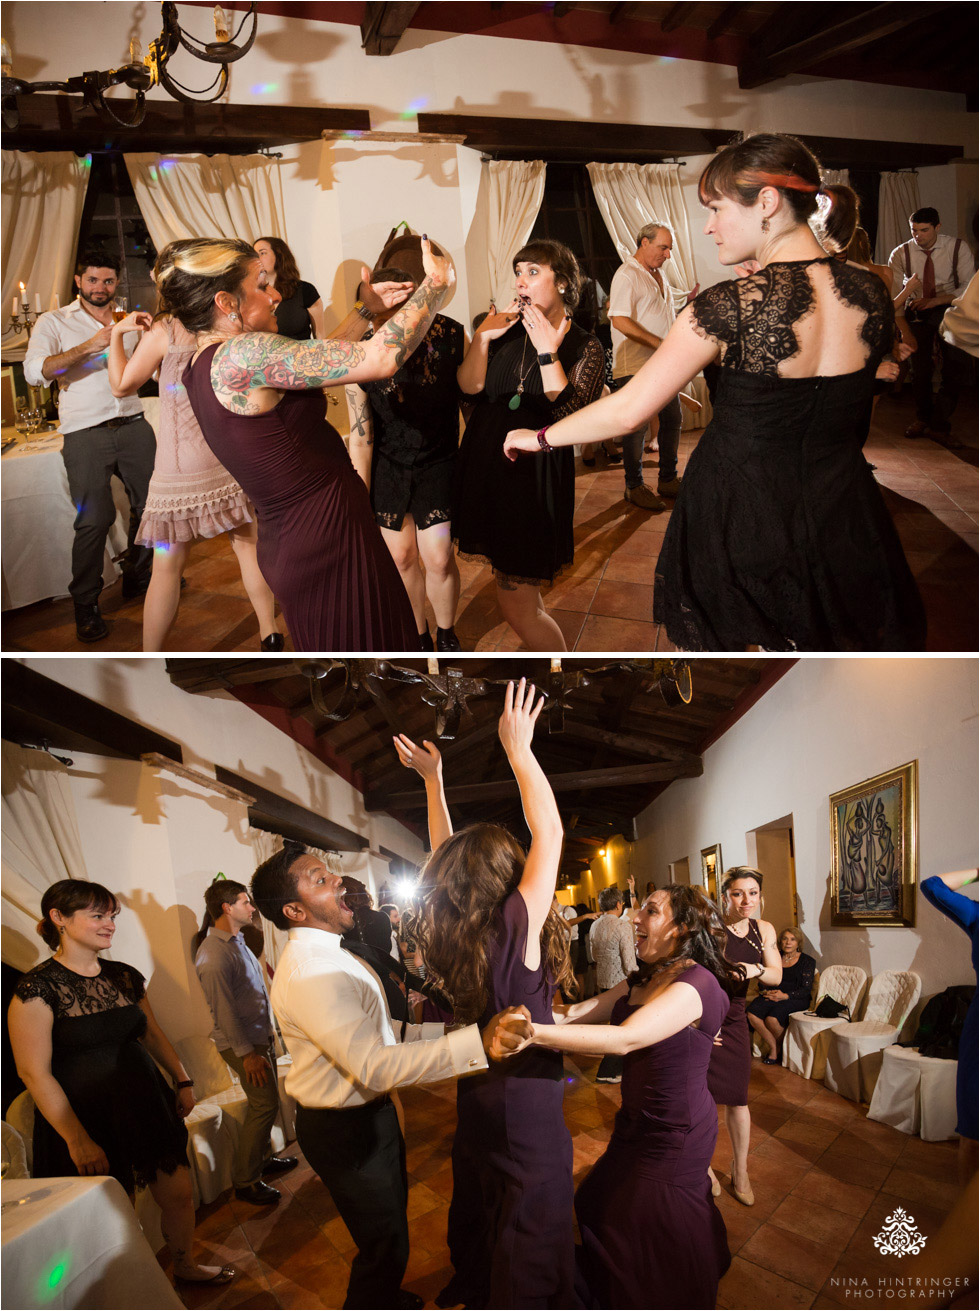 Rocking the dance floor at Villa Damiani in Bassano del Grappa, Italy - Blog of Nina Hintringer Photography - Wedding Photography, Wedding Reportage and Destination Weddings